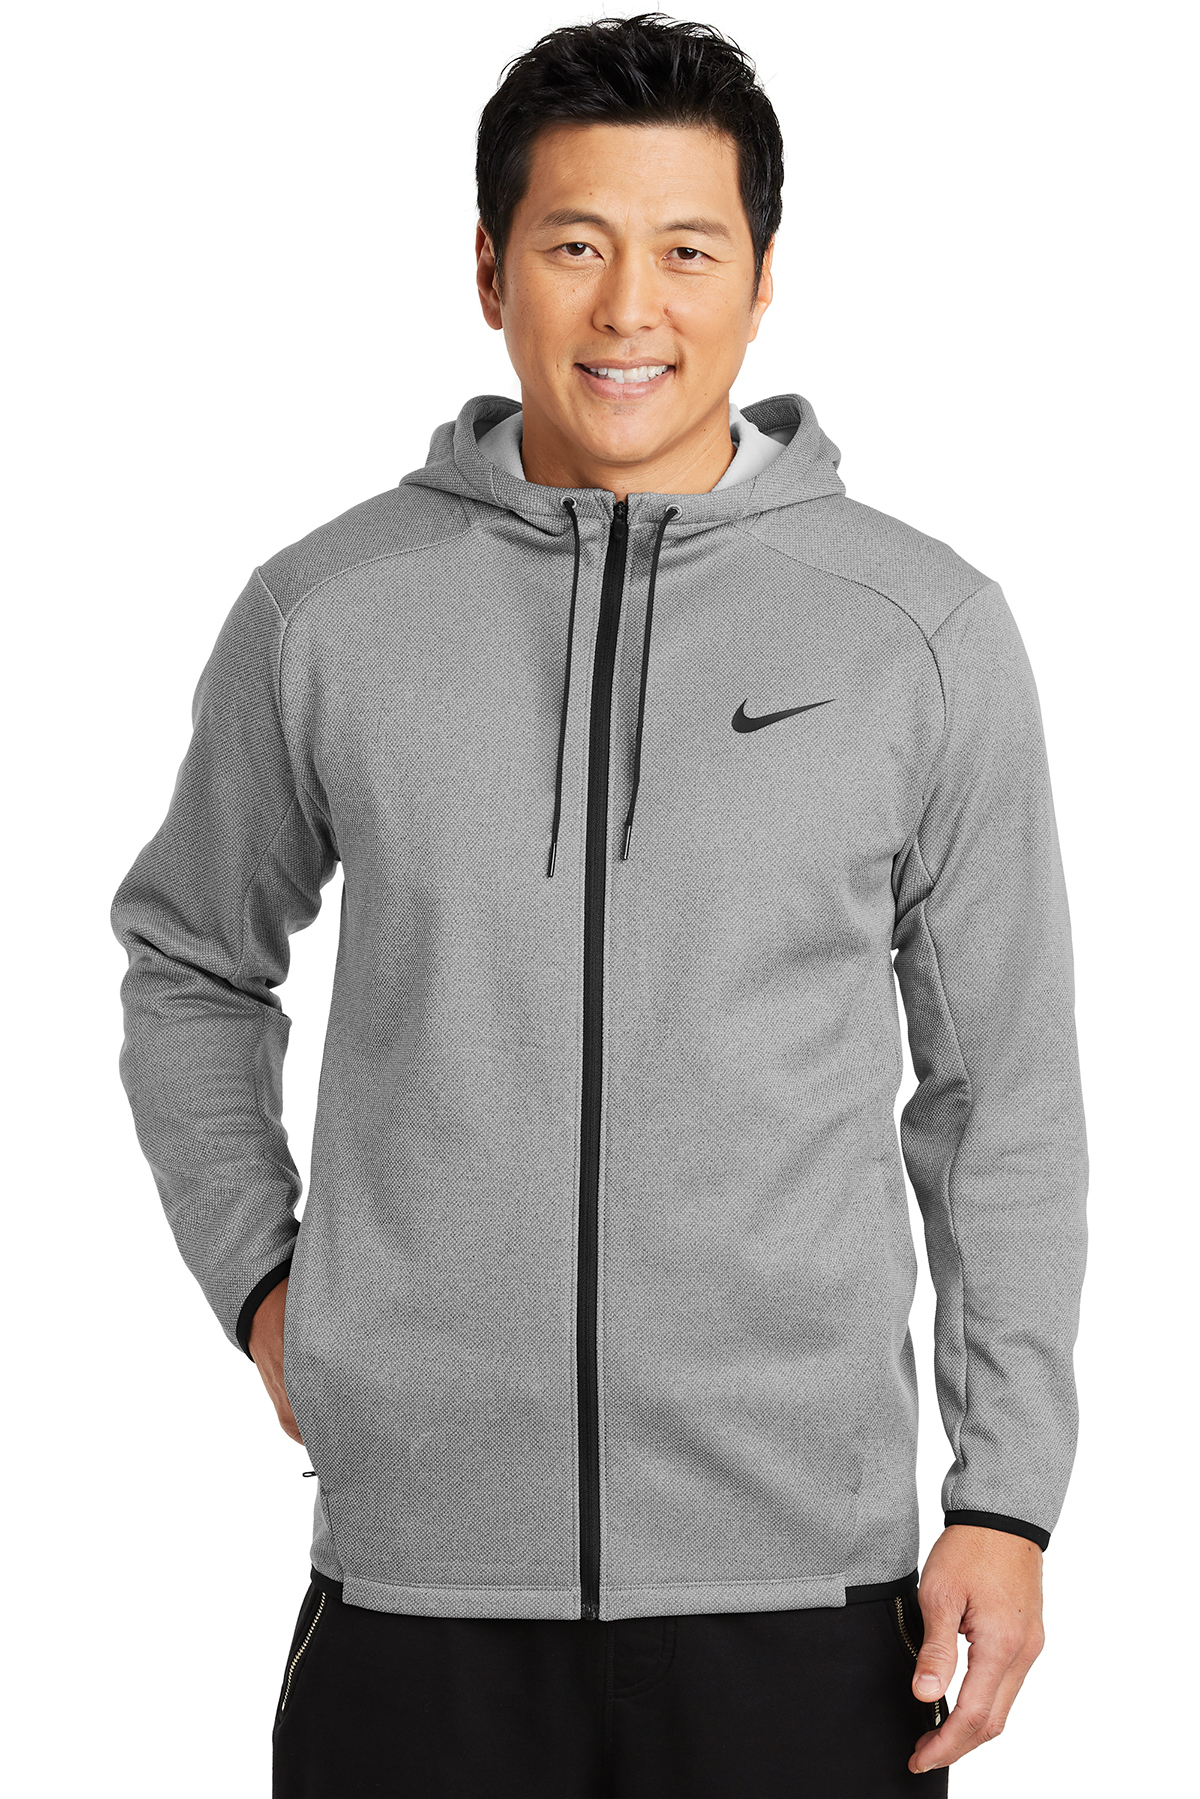 Nike Golf NKAH6268 - Nike Therma-FIT Textured Fleece Full-Zip Hoodie